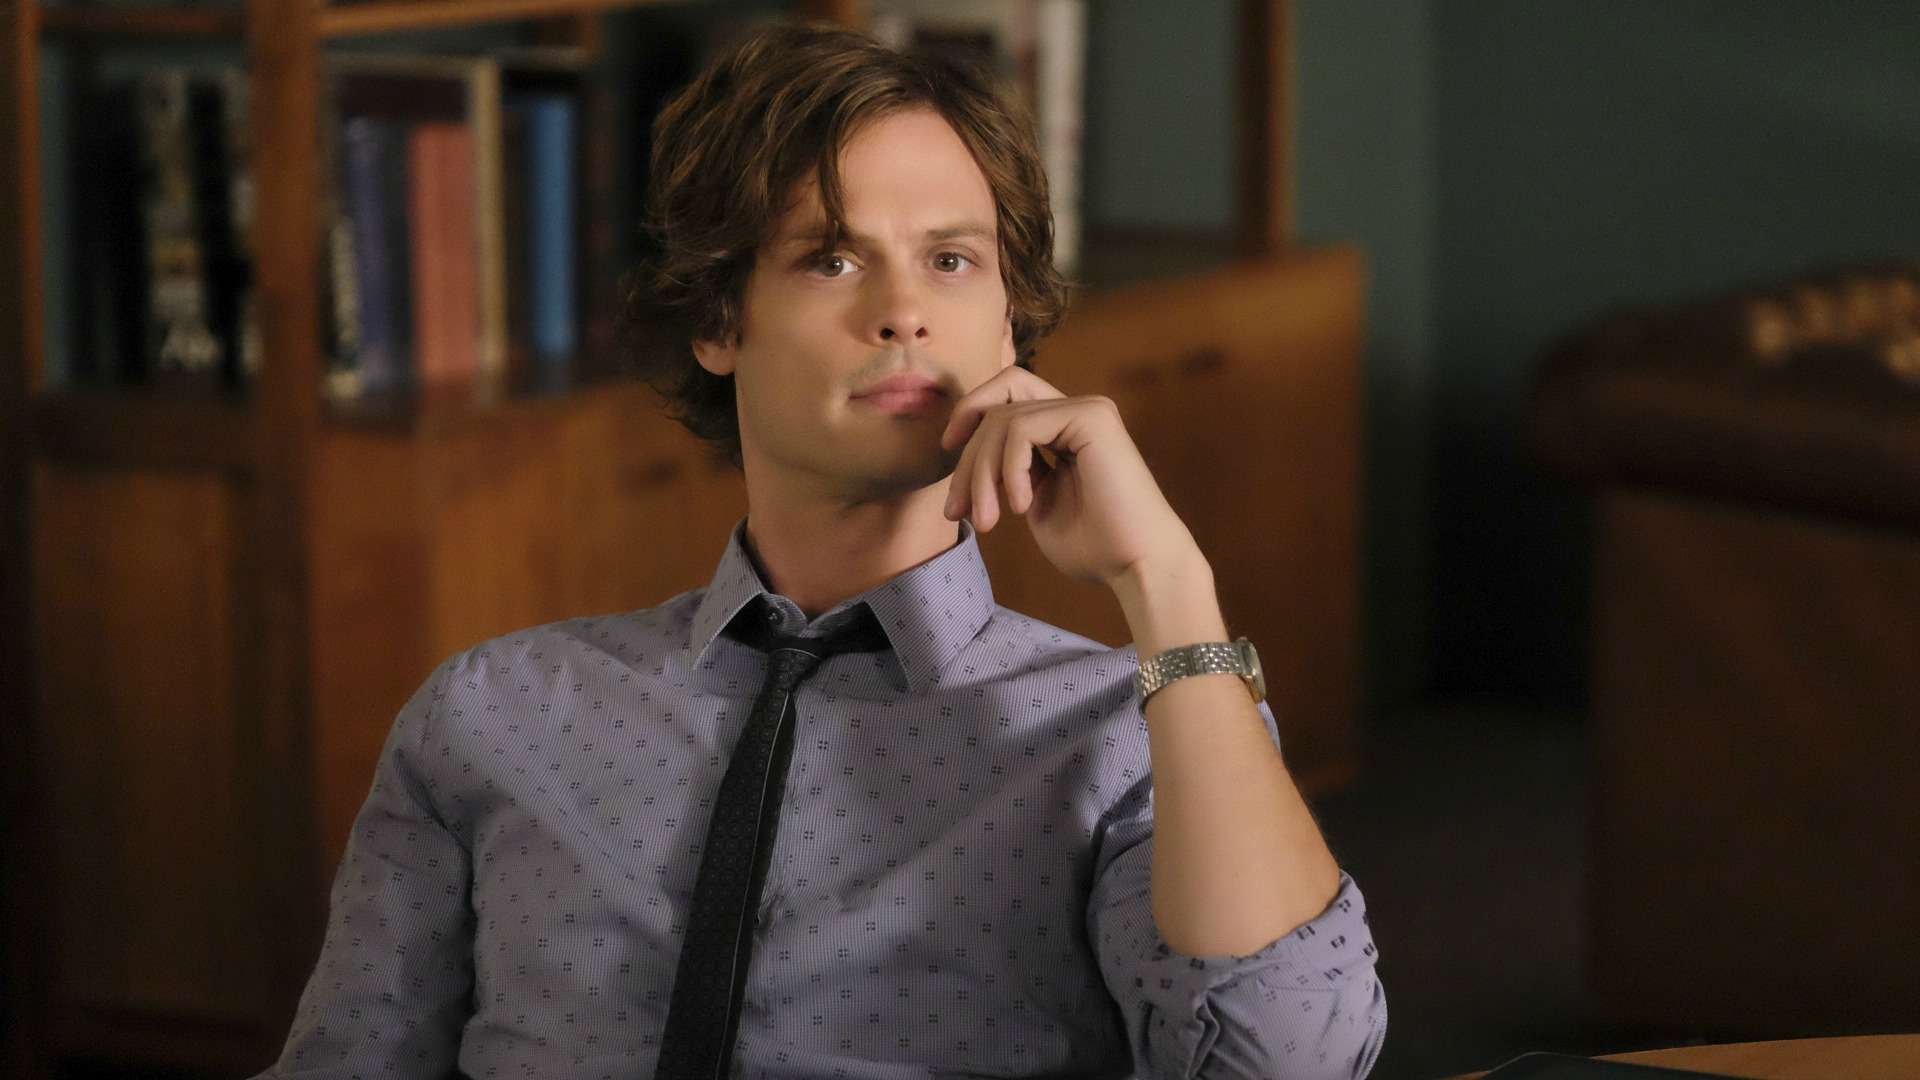 Spencer faced new challenges with his mother.